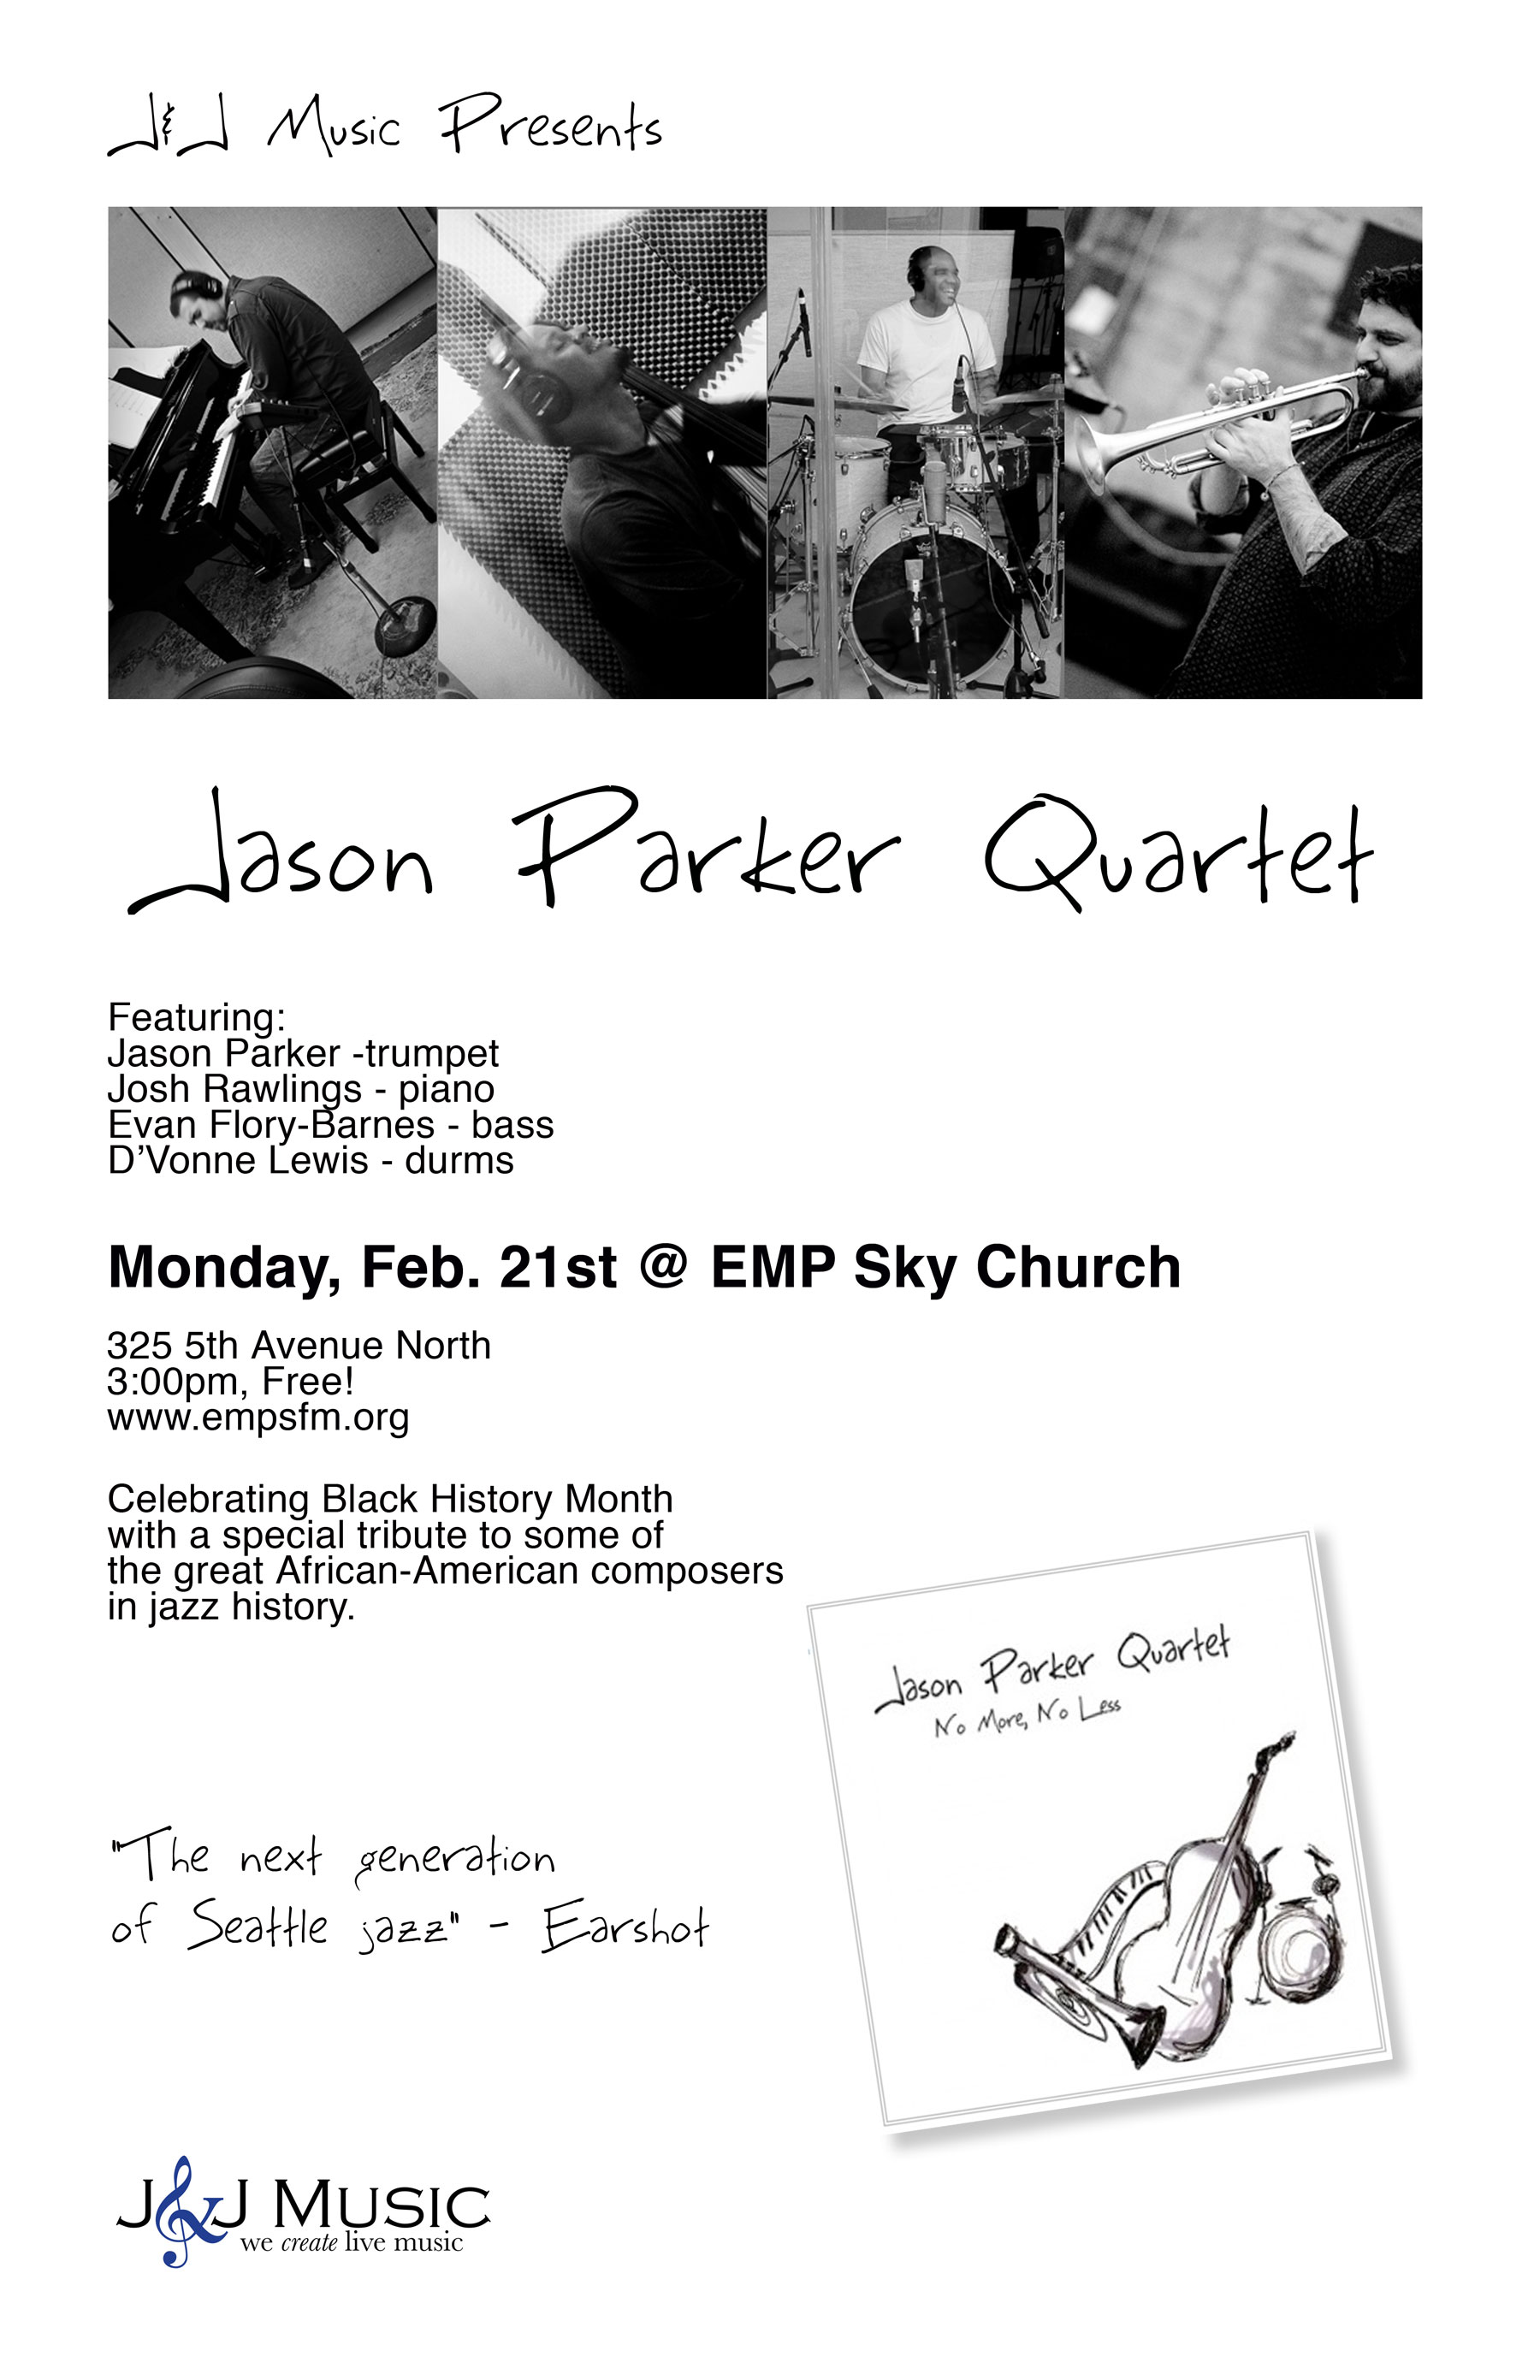 Your Chance To Catch the JPQ Live!